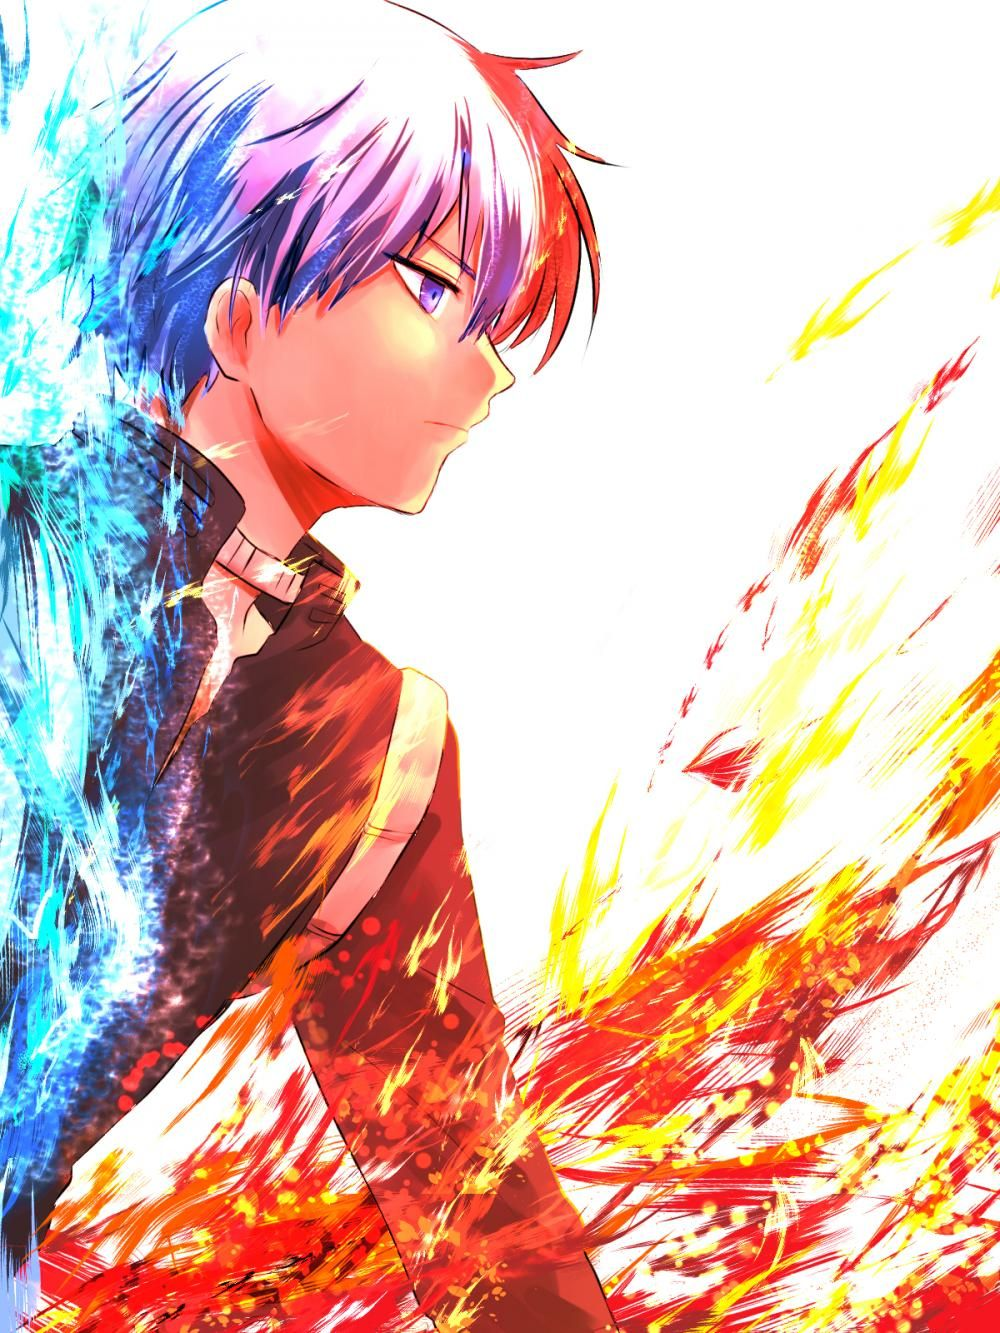 Todoroki Shouto//Me encanta Boku no Hero Pinterest